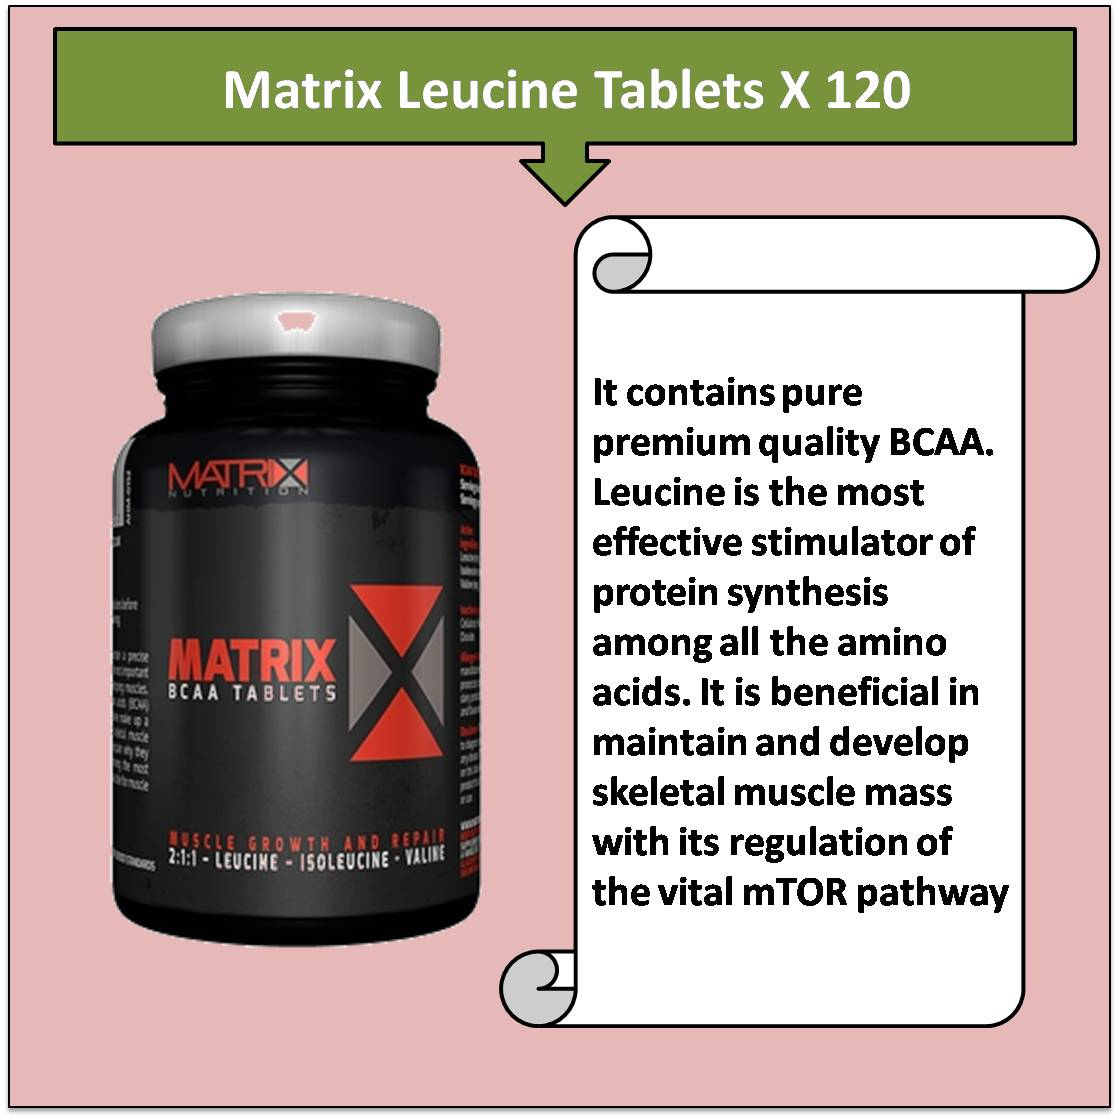 Matrix Leucine Tablets X 120